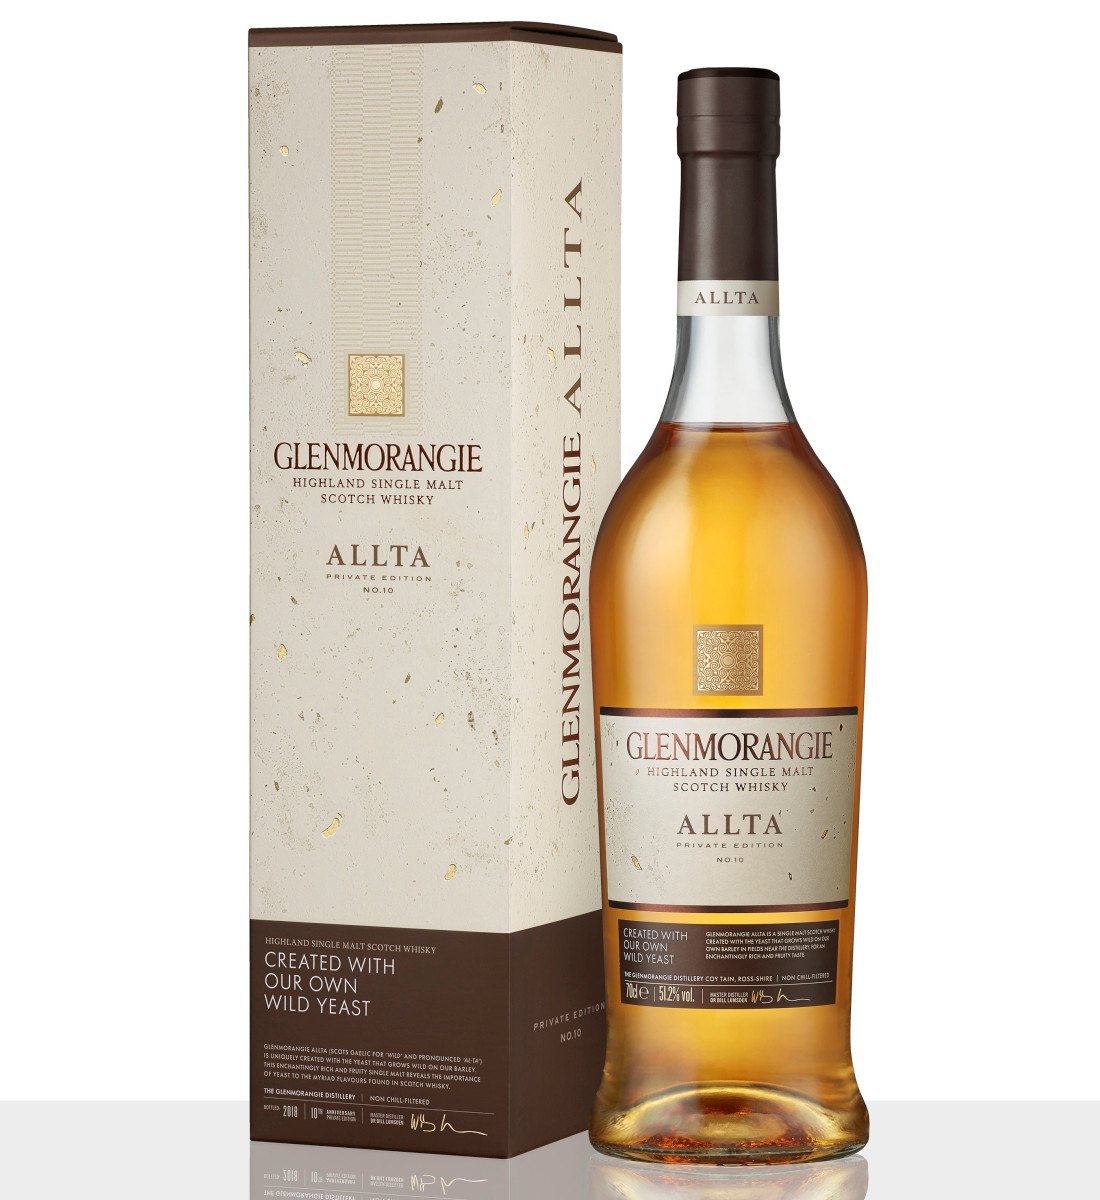 Glenmorangie Allta Private Edition No.10